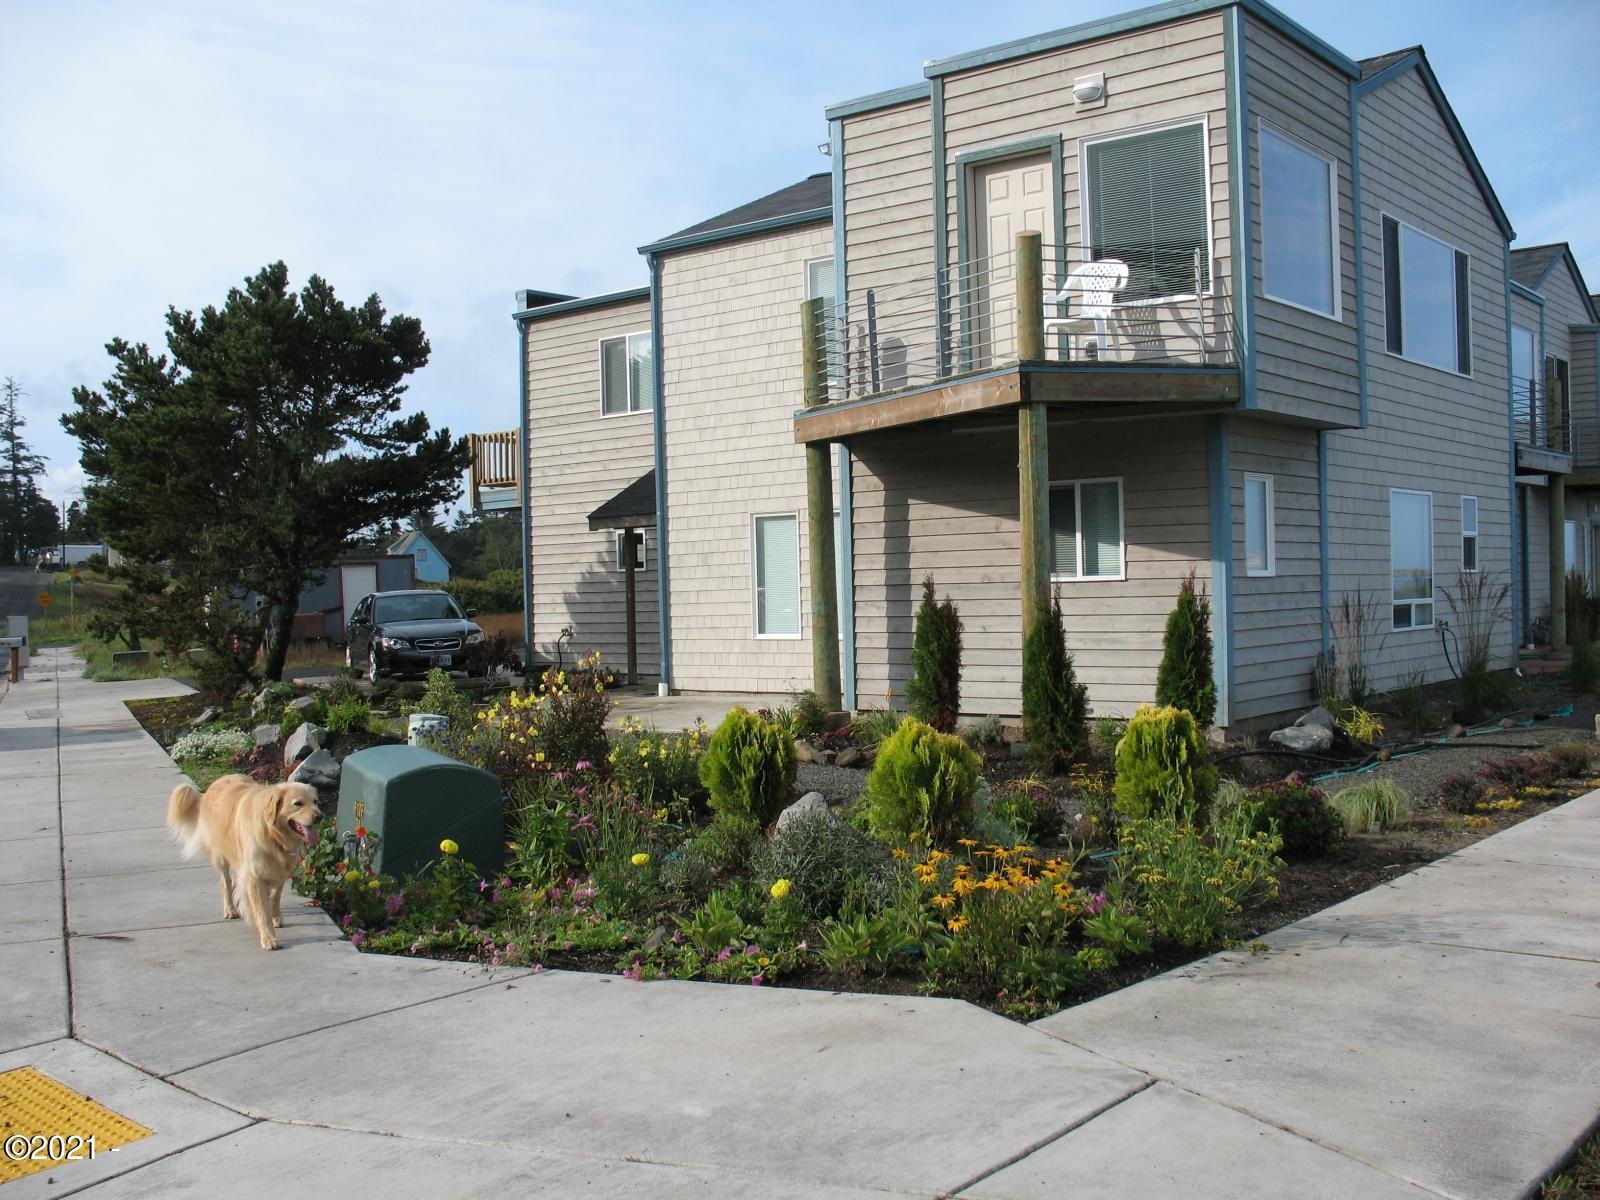 2612 SW Brant St, Newport, OR 97366 - Front of Townhosue